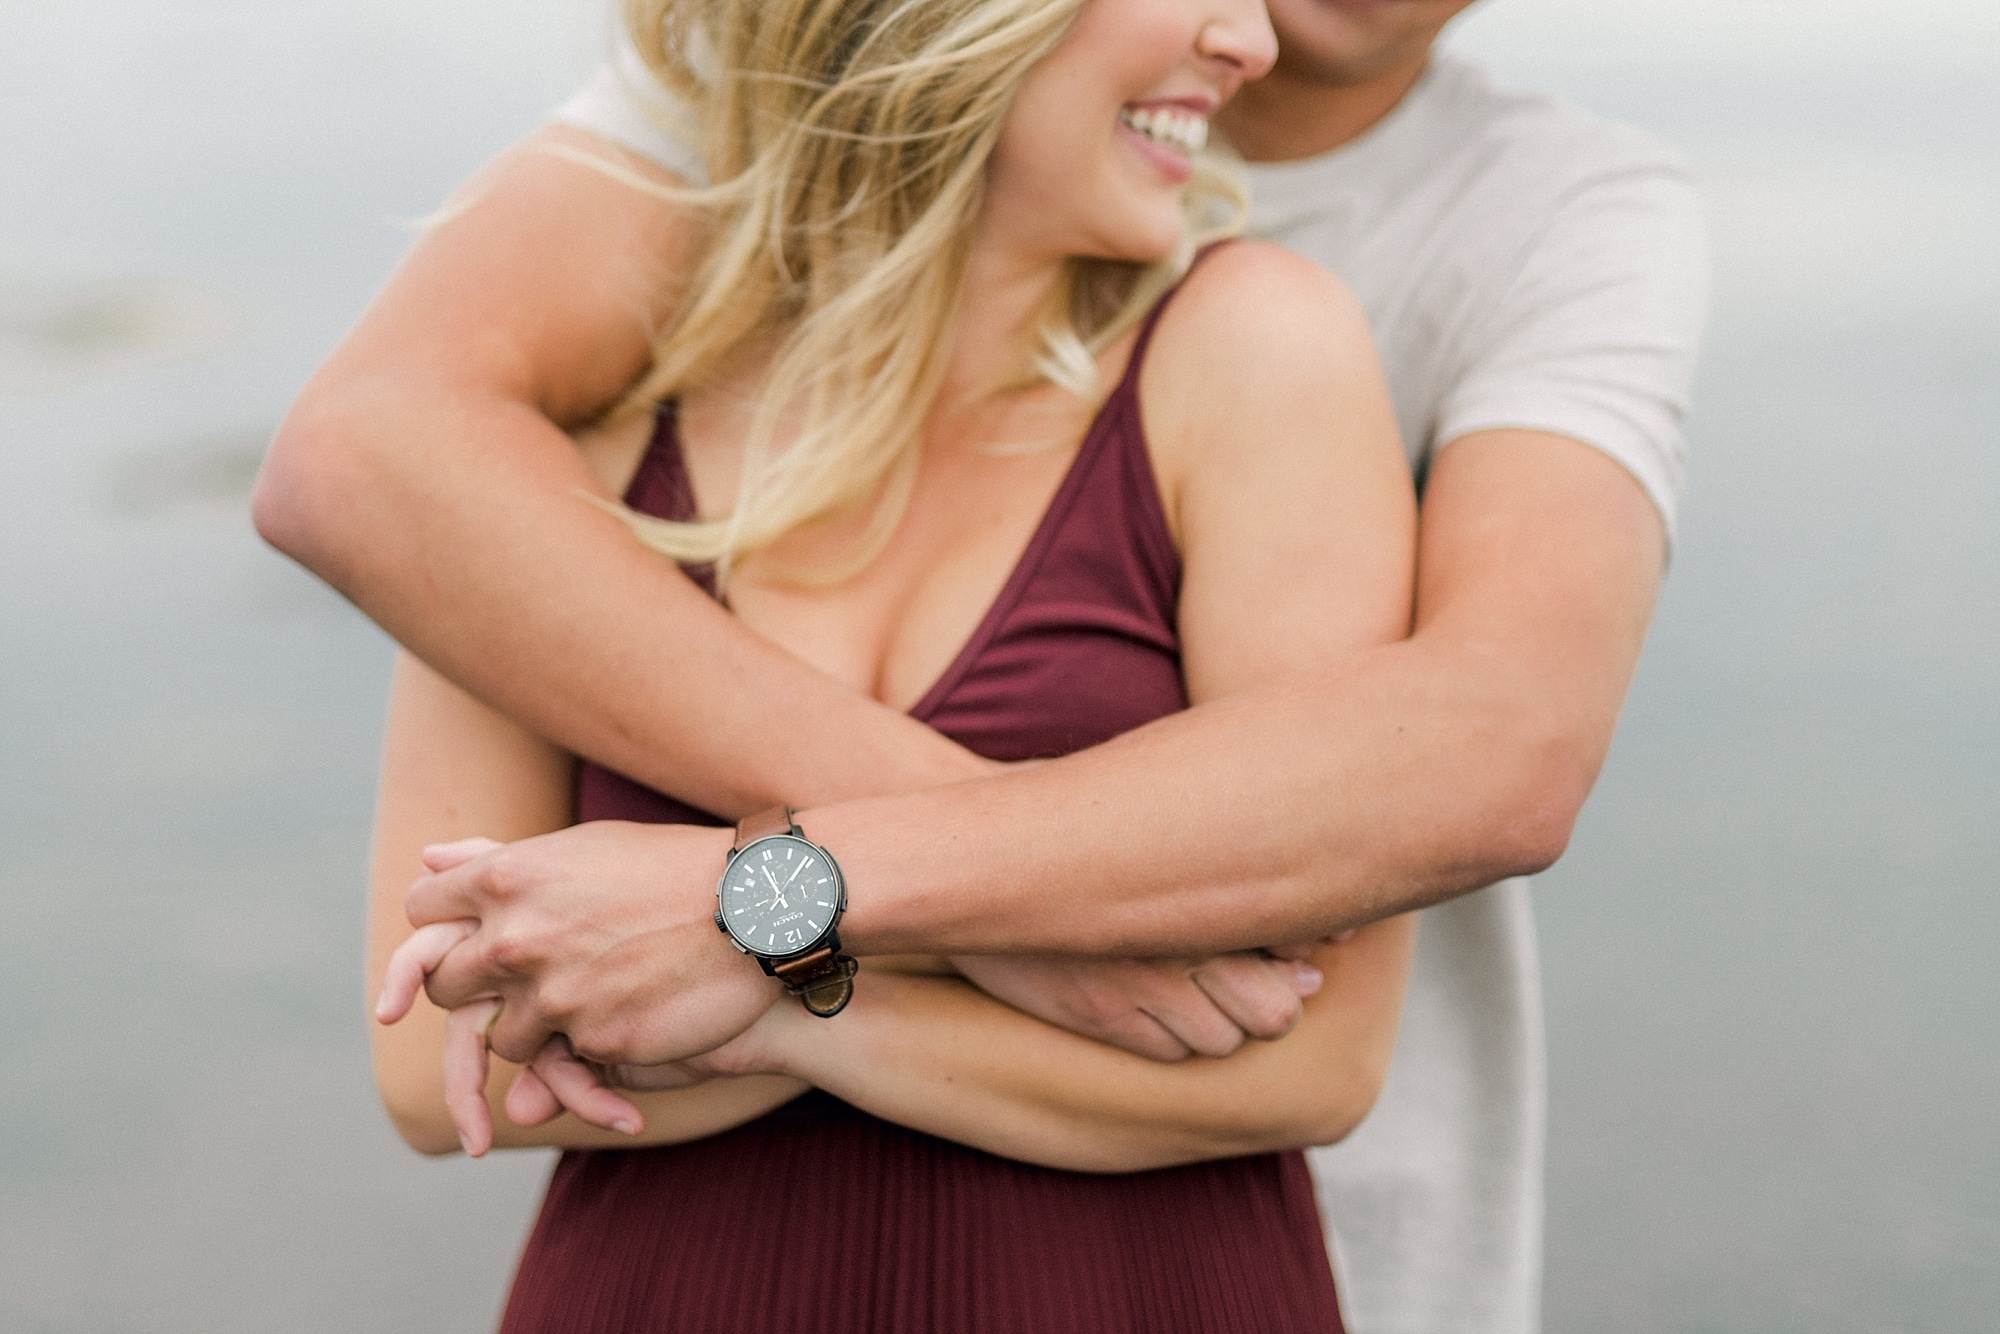 arms wrapped around a girl in a hug